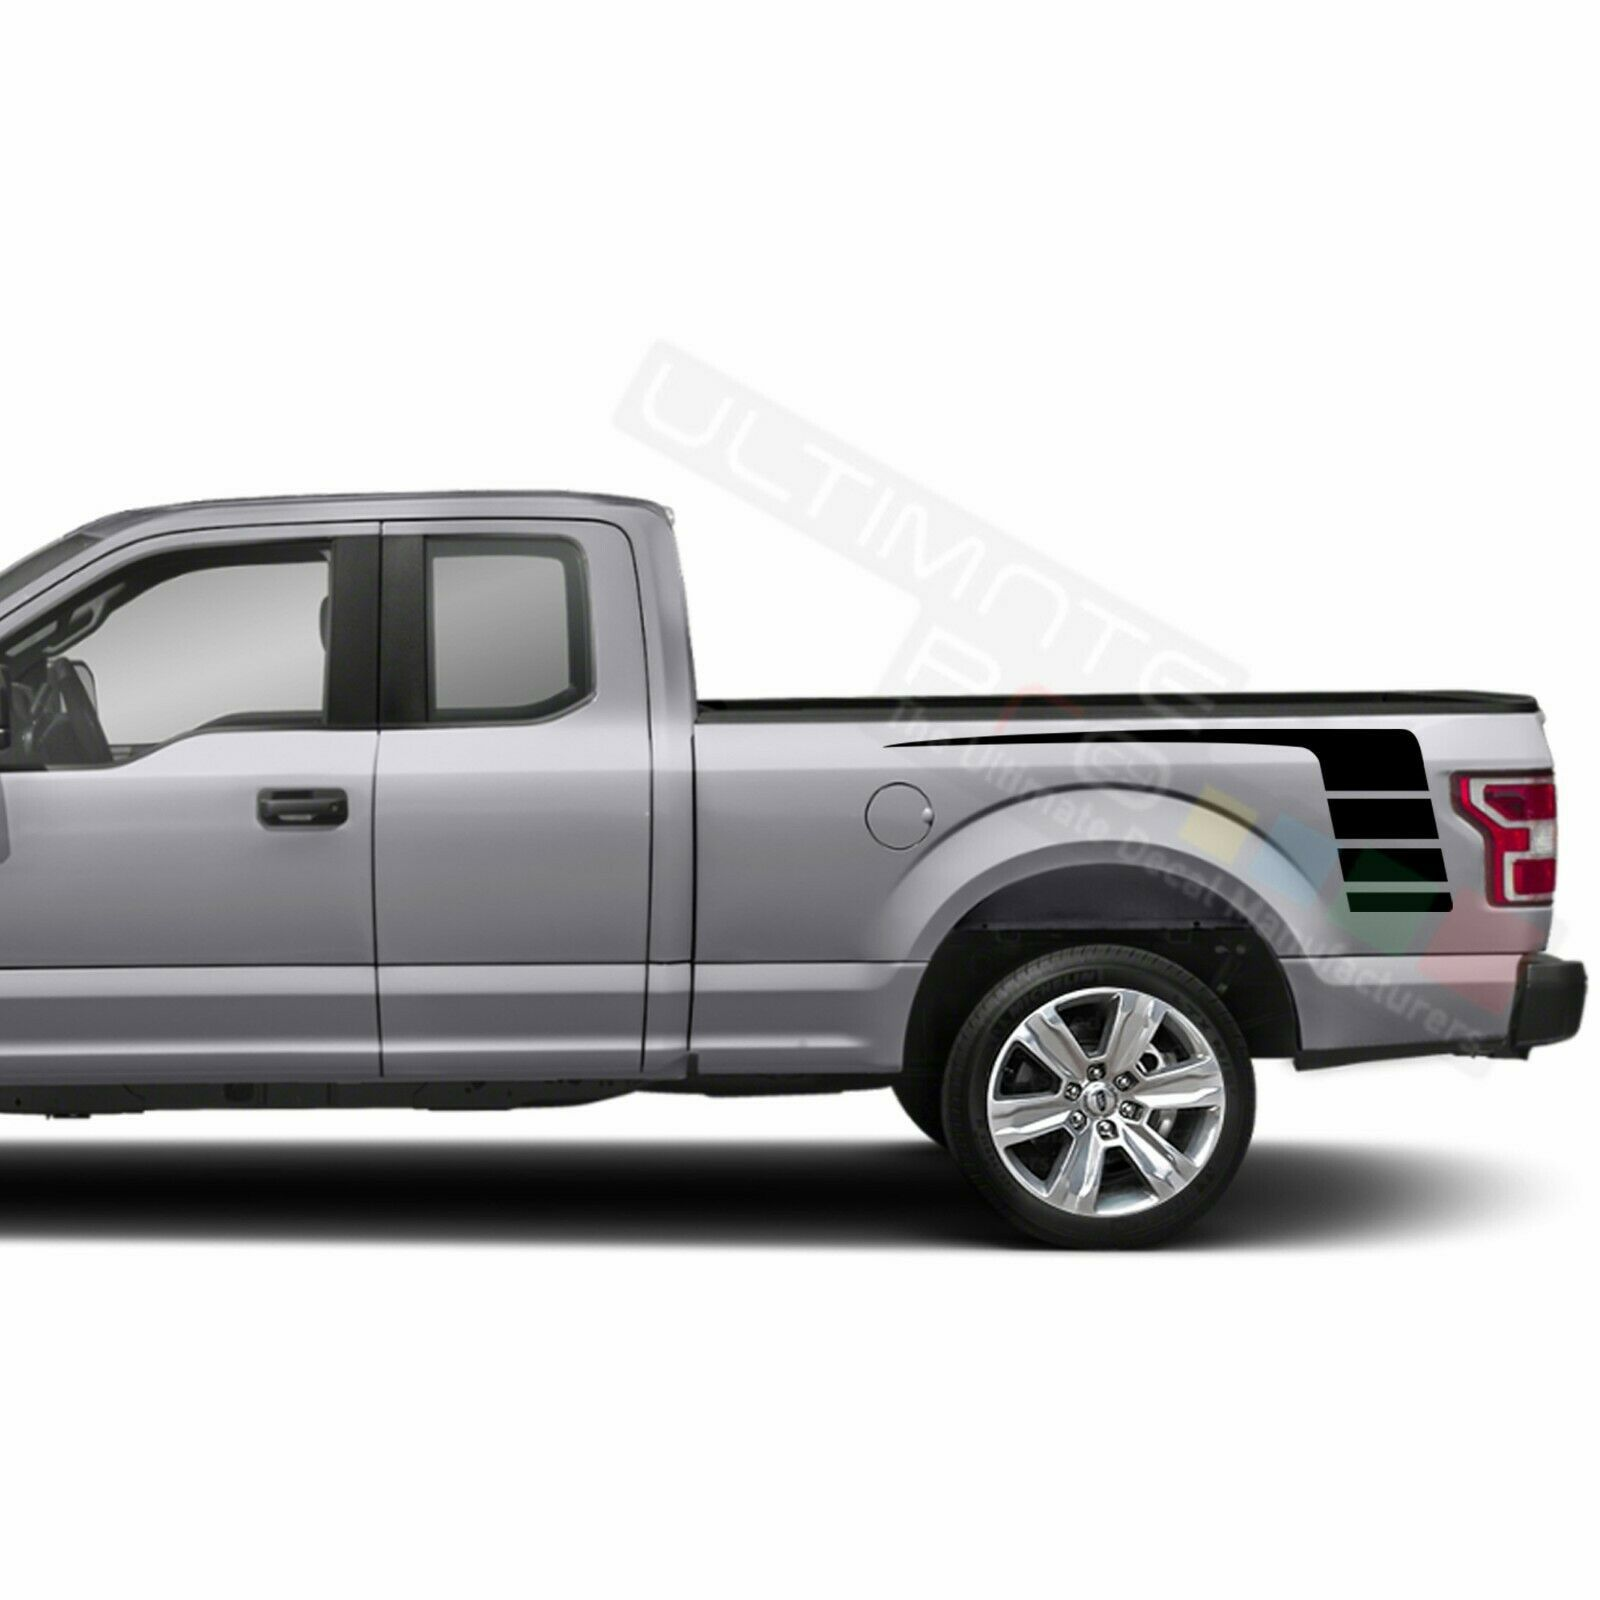 Stripes Wrap Side Doors Mirror Decal Sticker for Ford Supercab F150 2020 - $49.68